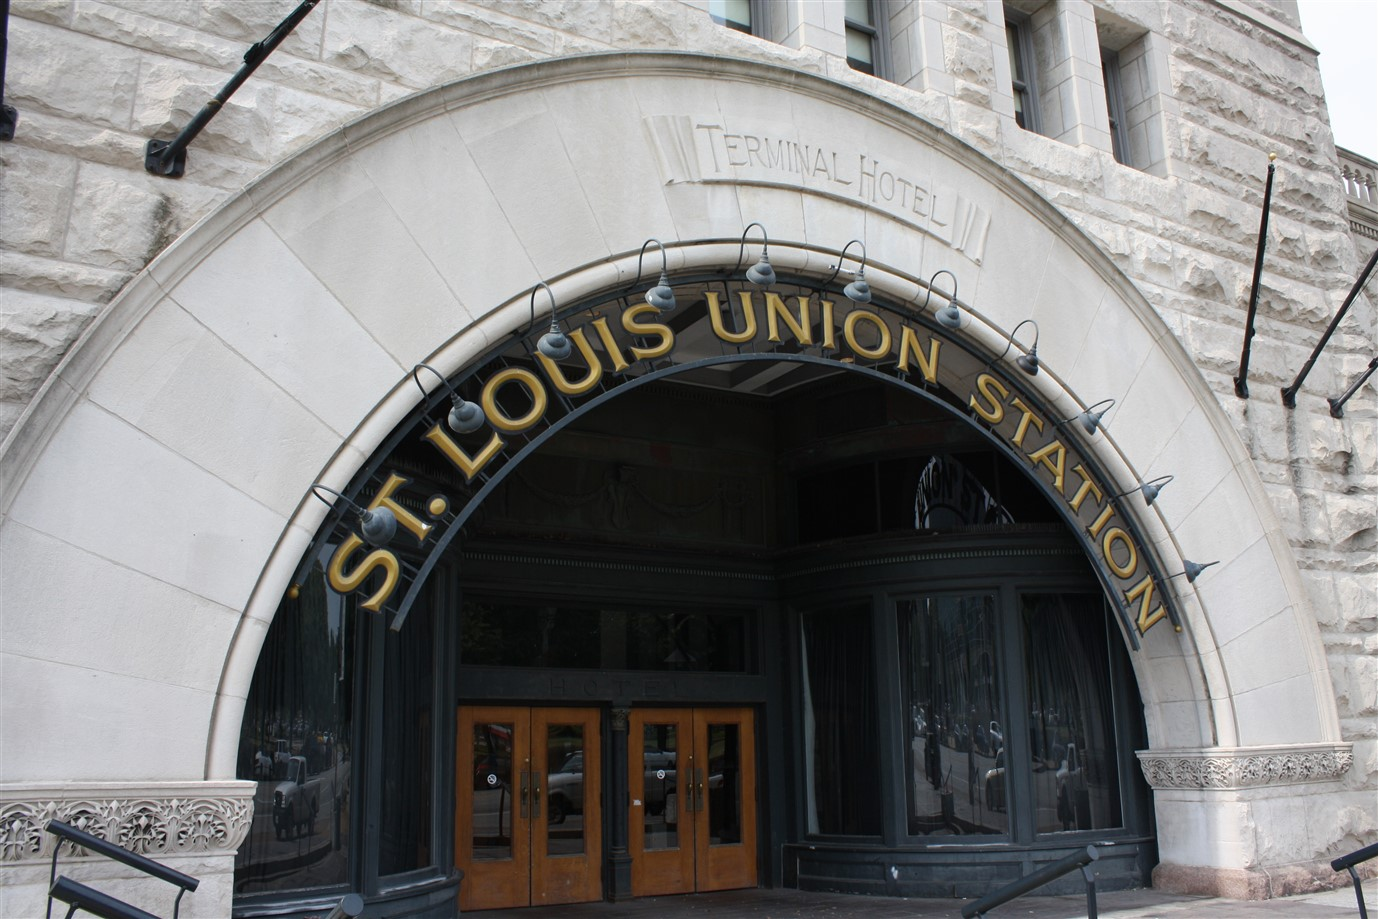 2012 07 01 93 St Louis Union Station